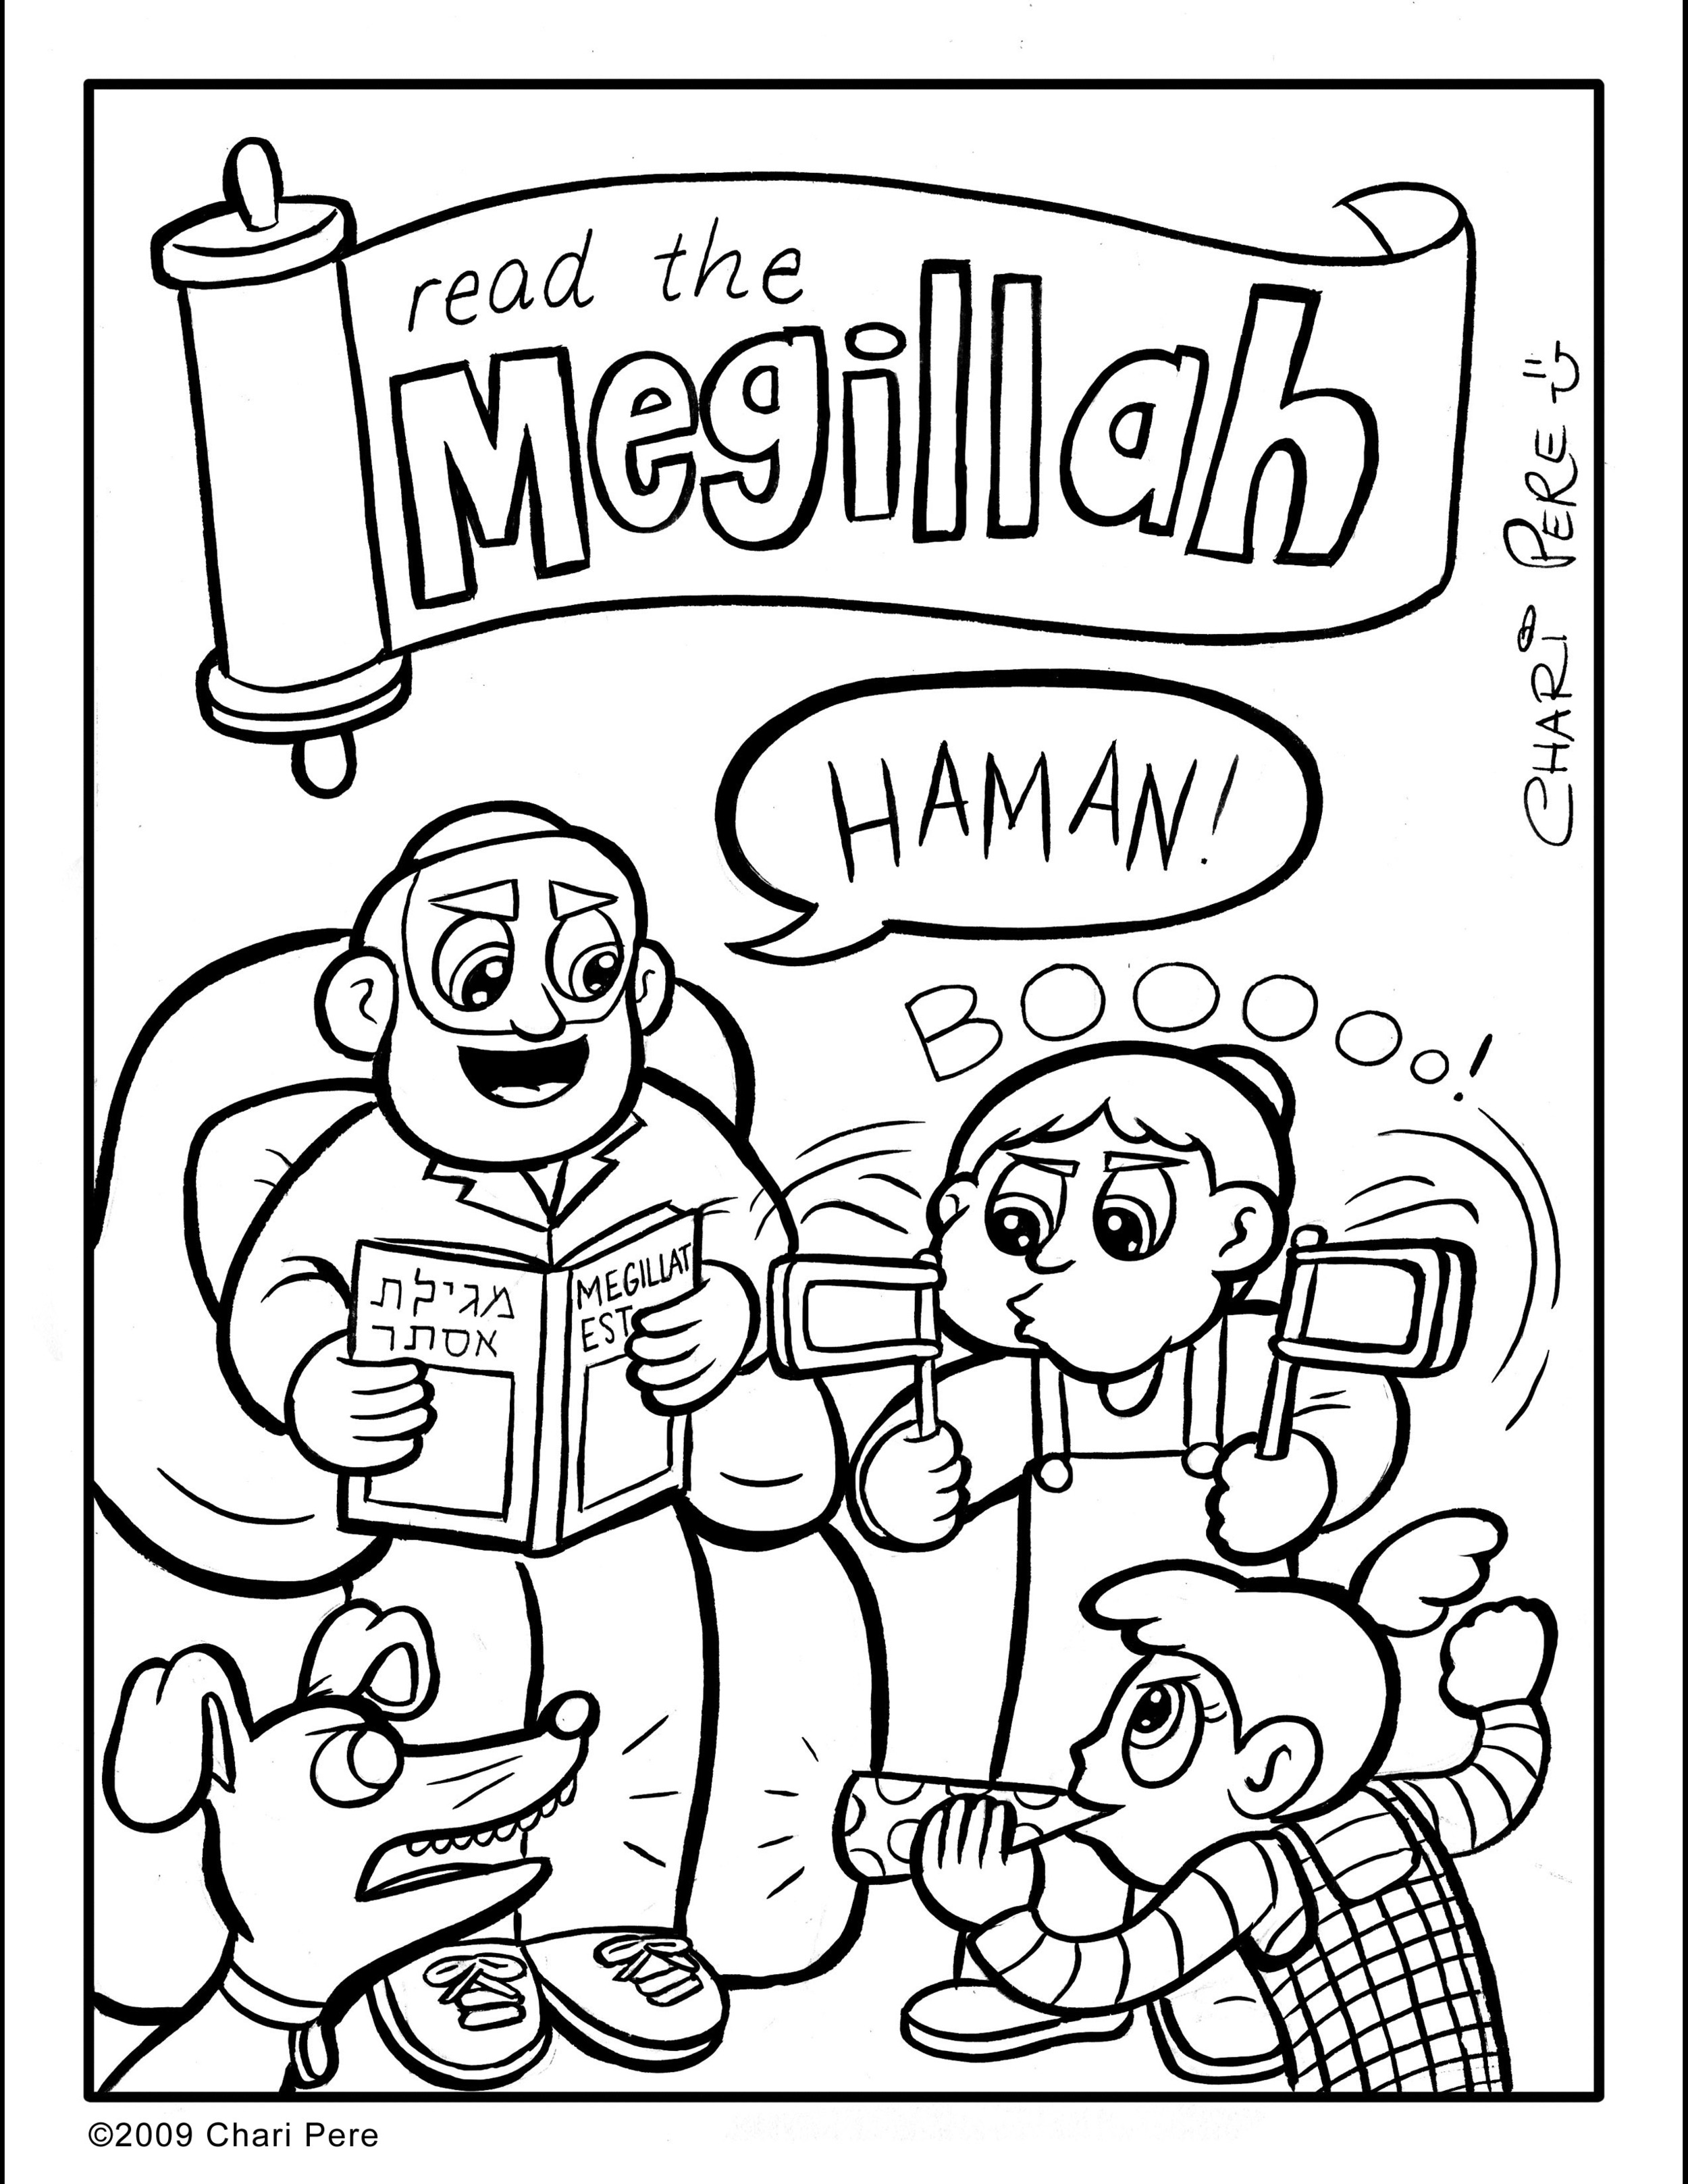 Coloring Pages — Chari Pere, Cartoonist